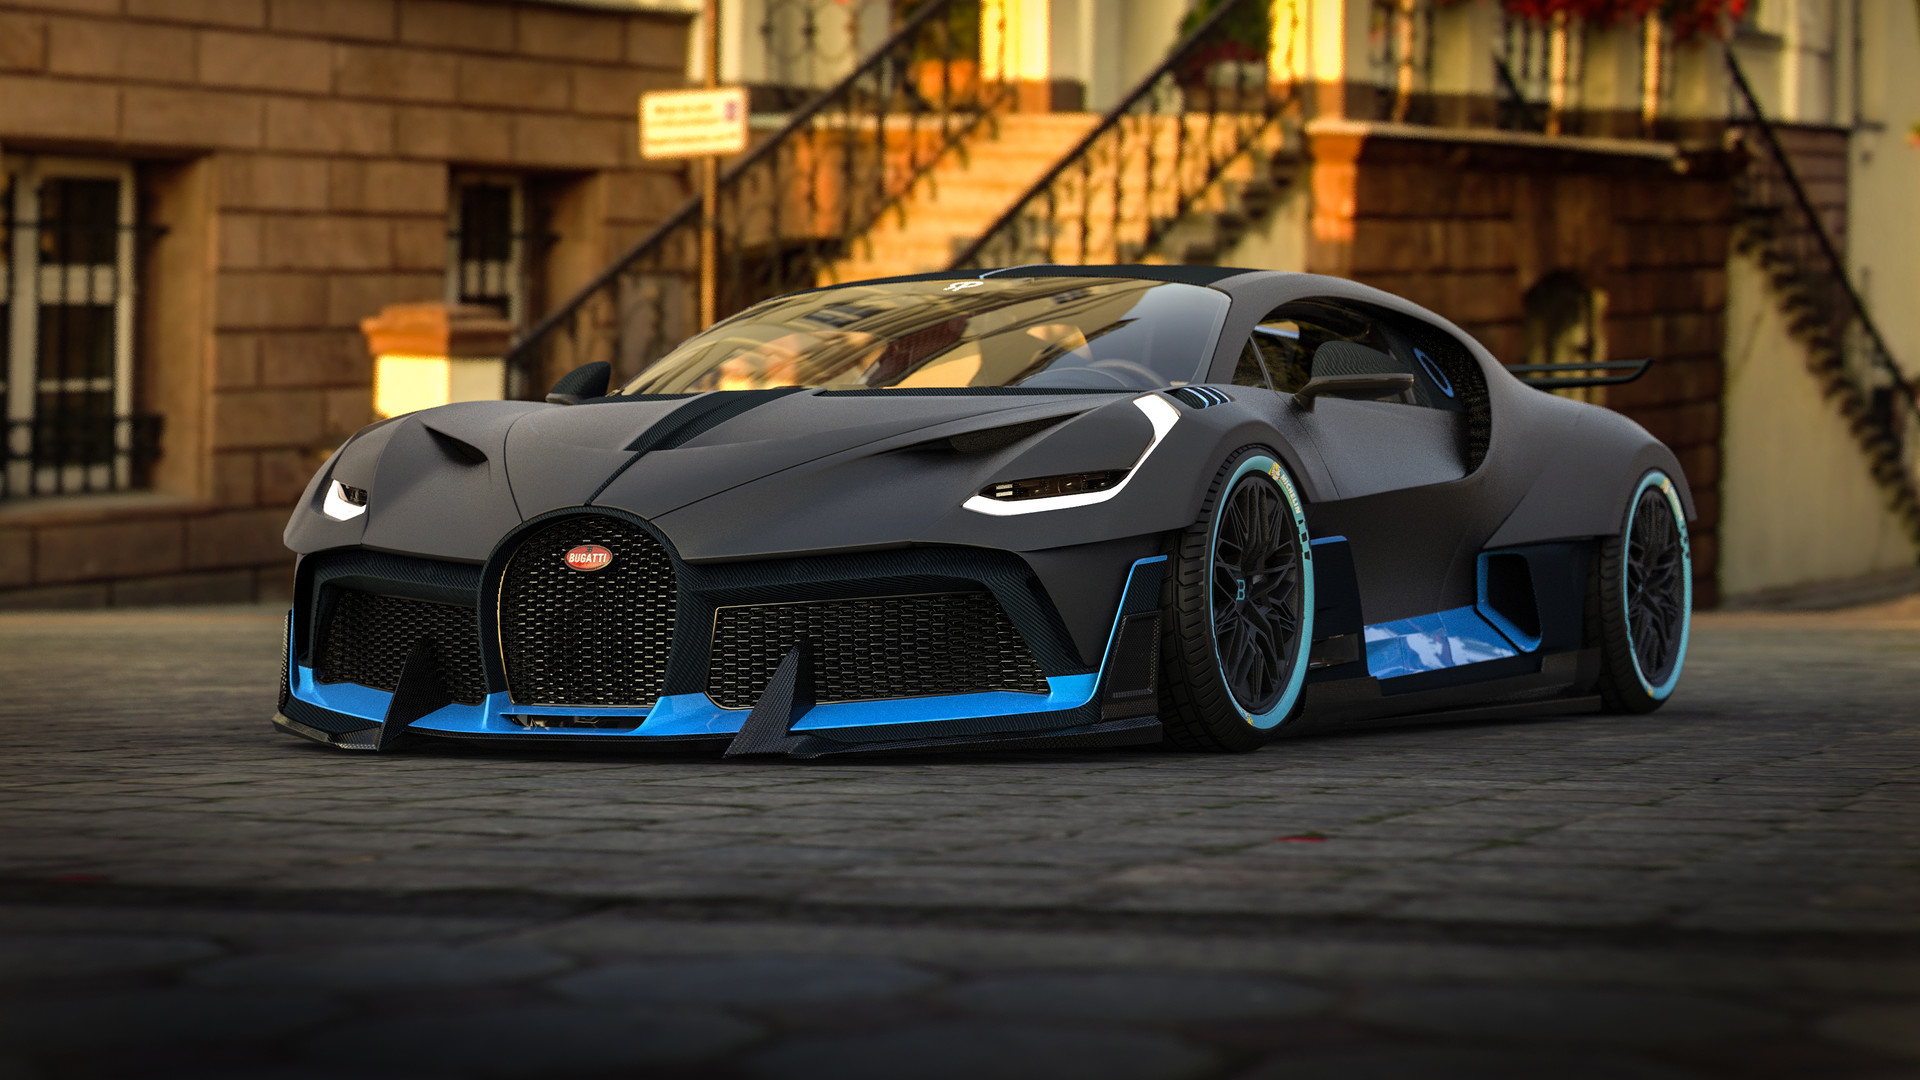 1920x1080 Bugatti Divo 2018 Art Laptop Full Hd 1080p Hd 4k Wallpapers Images Backgrounds Photos And Pictures